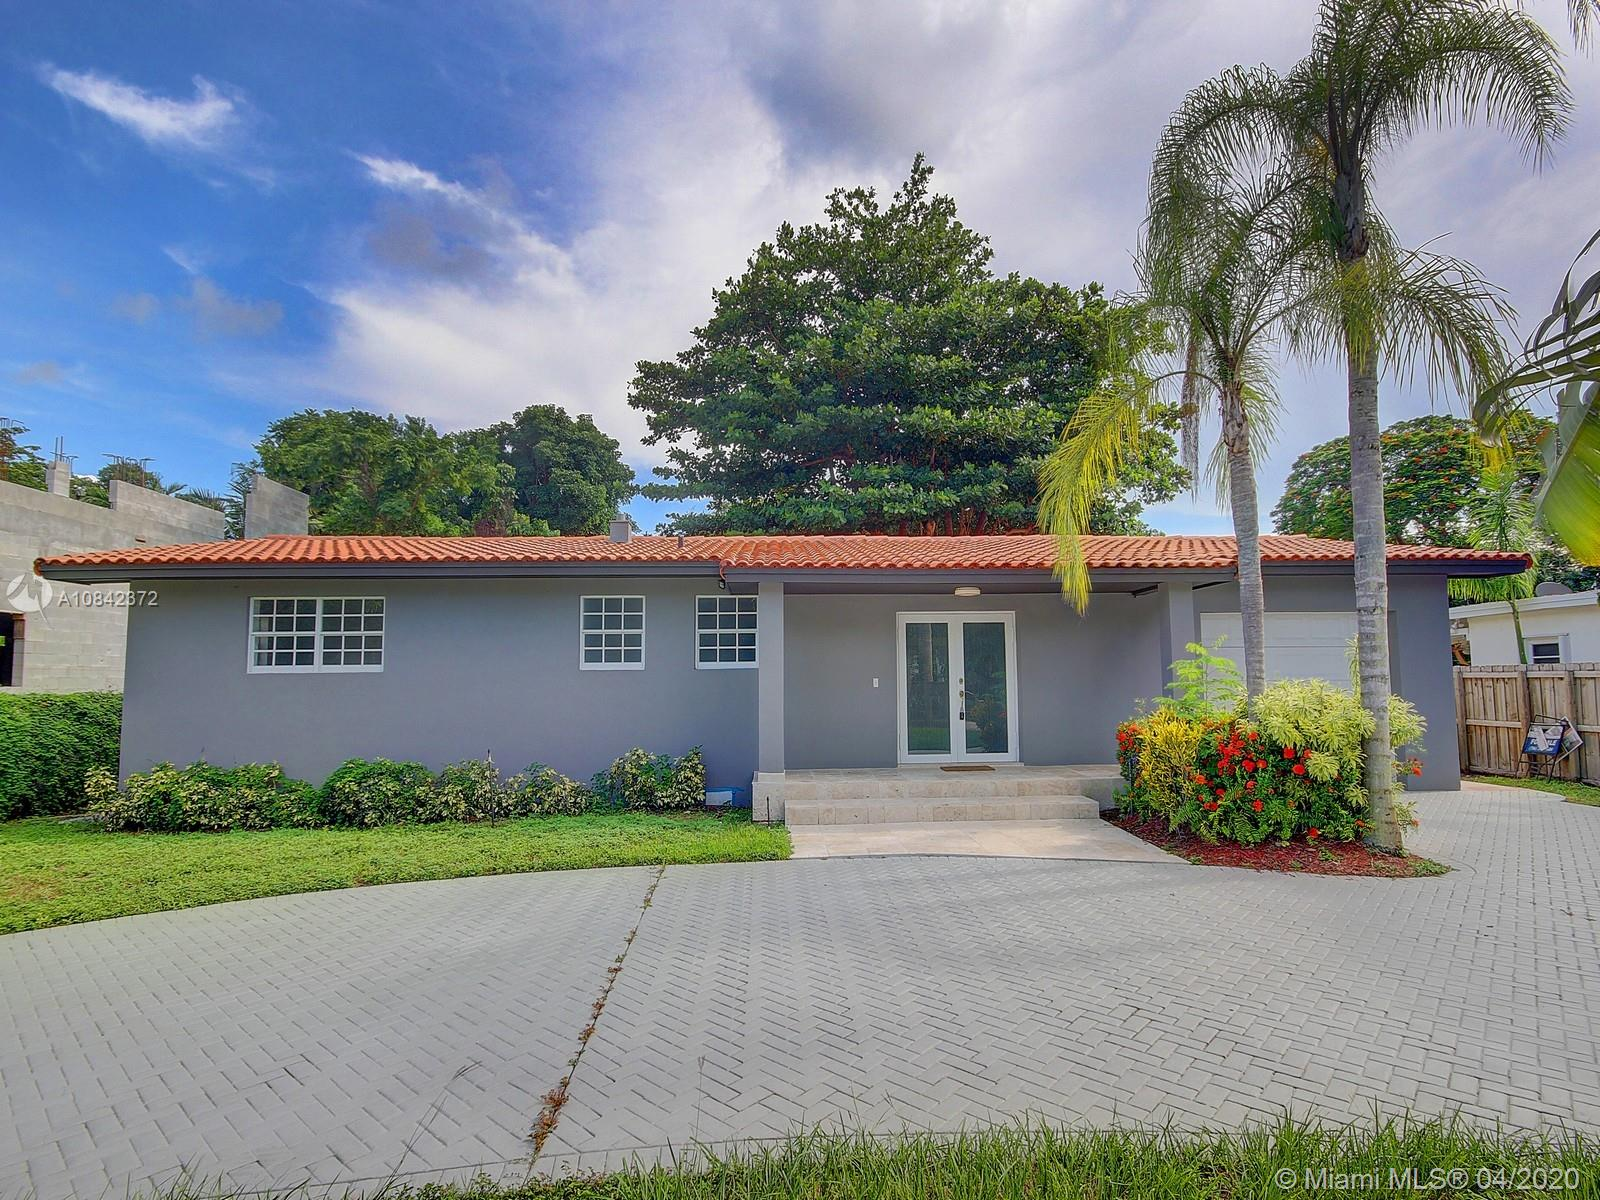 Unbelievable value at one of the best schools district in Miami-Dade county. House is priced at the land value. 14,400 SQ. FT. lot gives the new Buyer endless opportunities either keeping the house or adding a pool or building a new two story modern home. Existing house has been remodeled with new appliance, brand new A/C unit, new flooring, and lighting. Roof is in excellent conditions as well. Close to Sunset Mall, Restaurants and Shops.